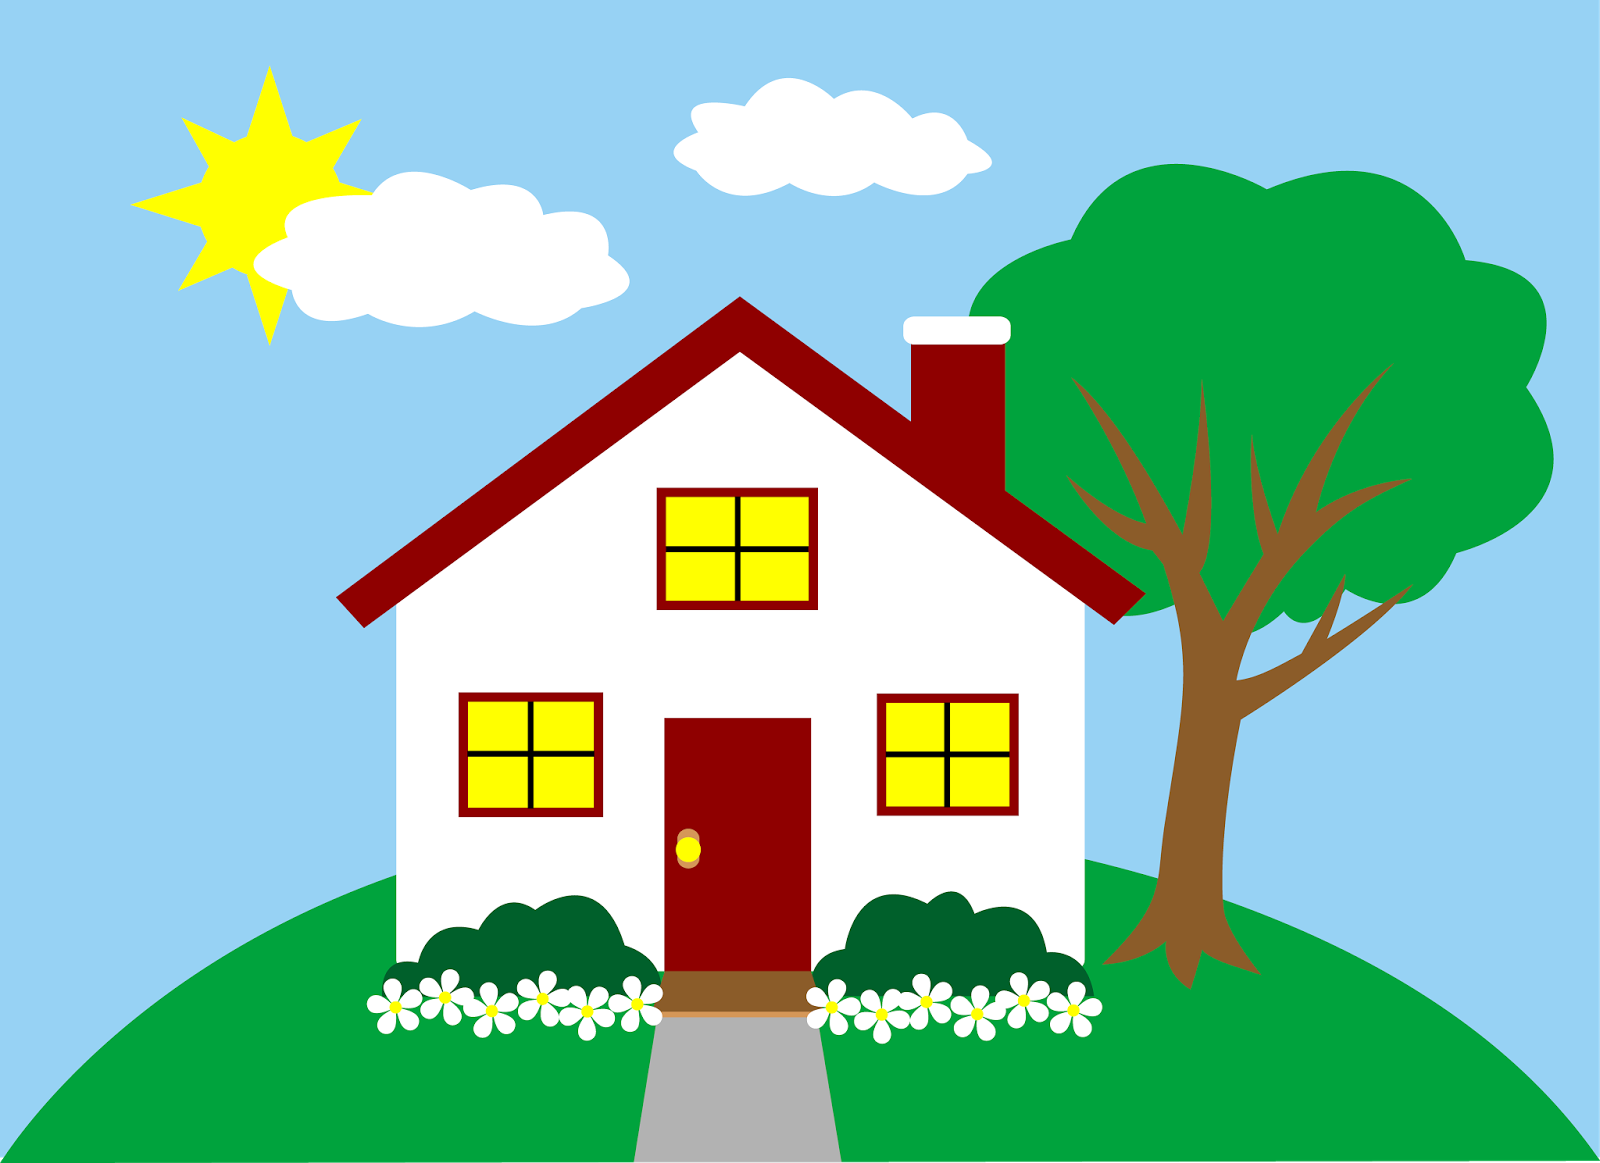 House Clipart Images